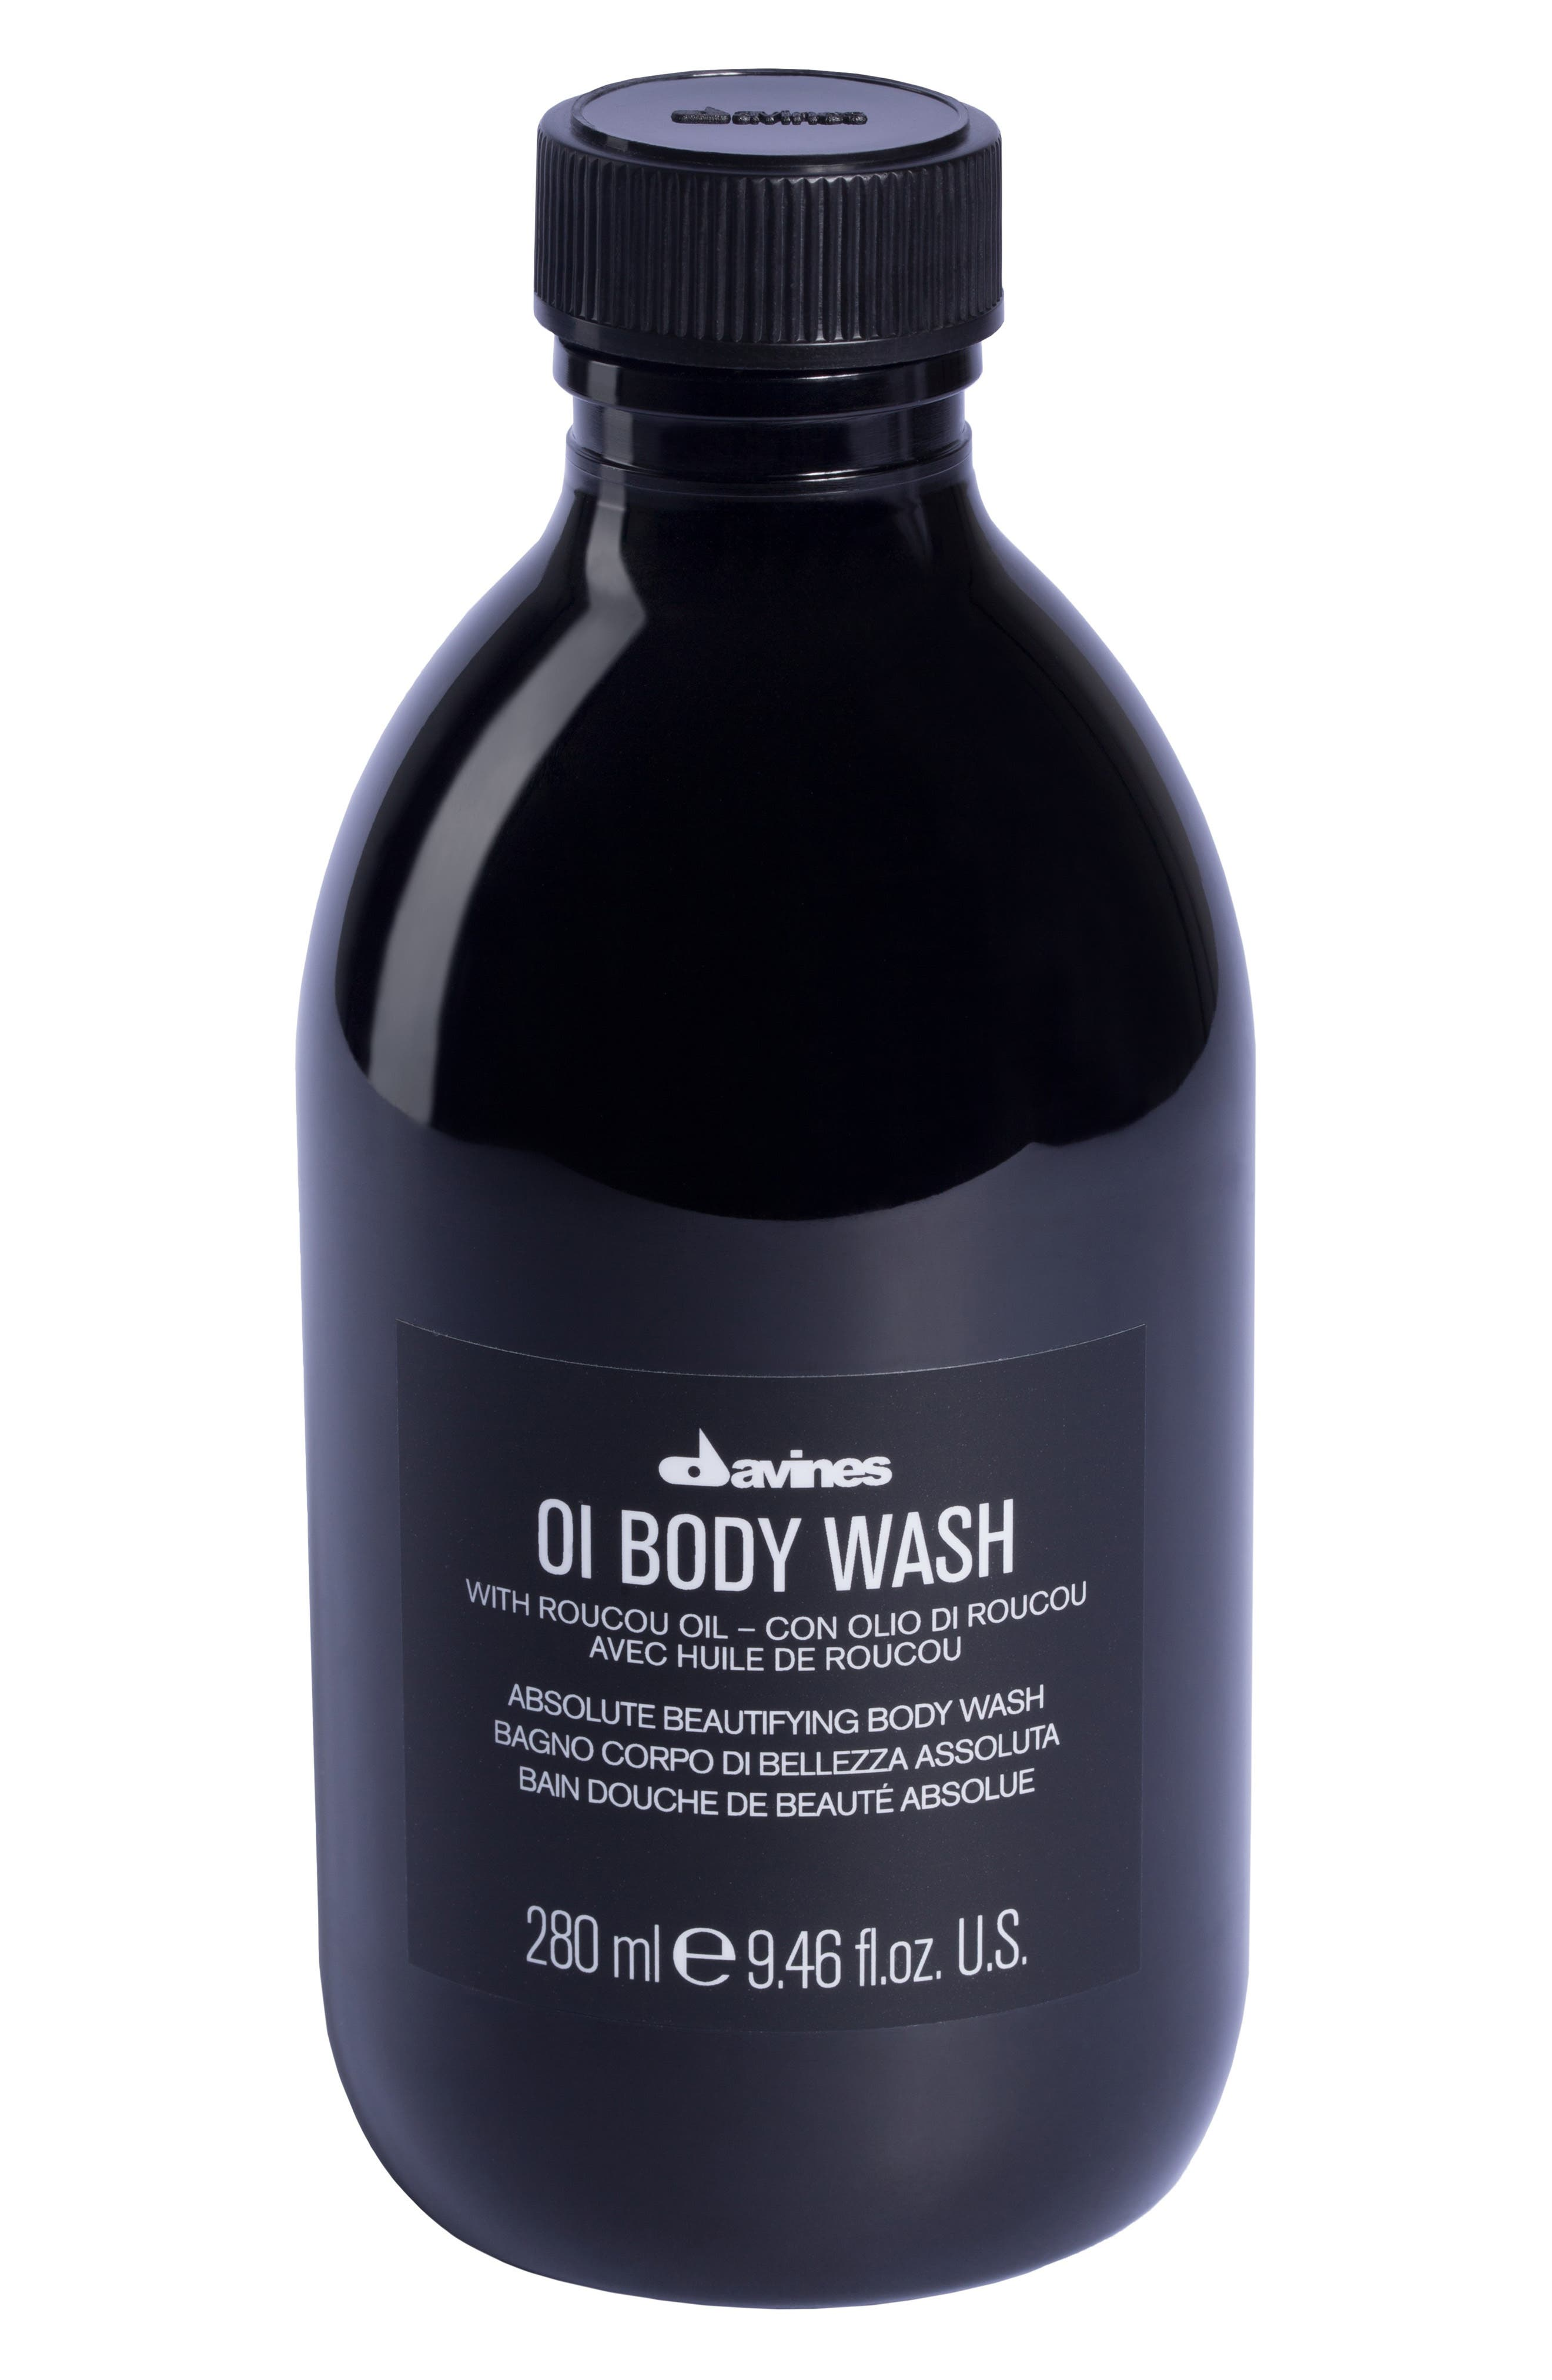 OI Body Wash at Nordstrom